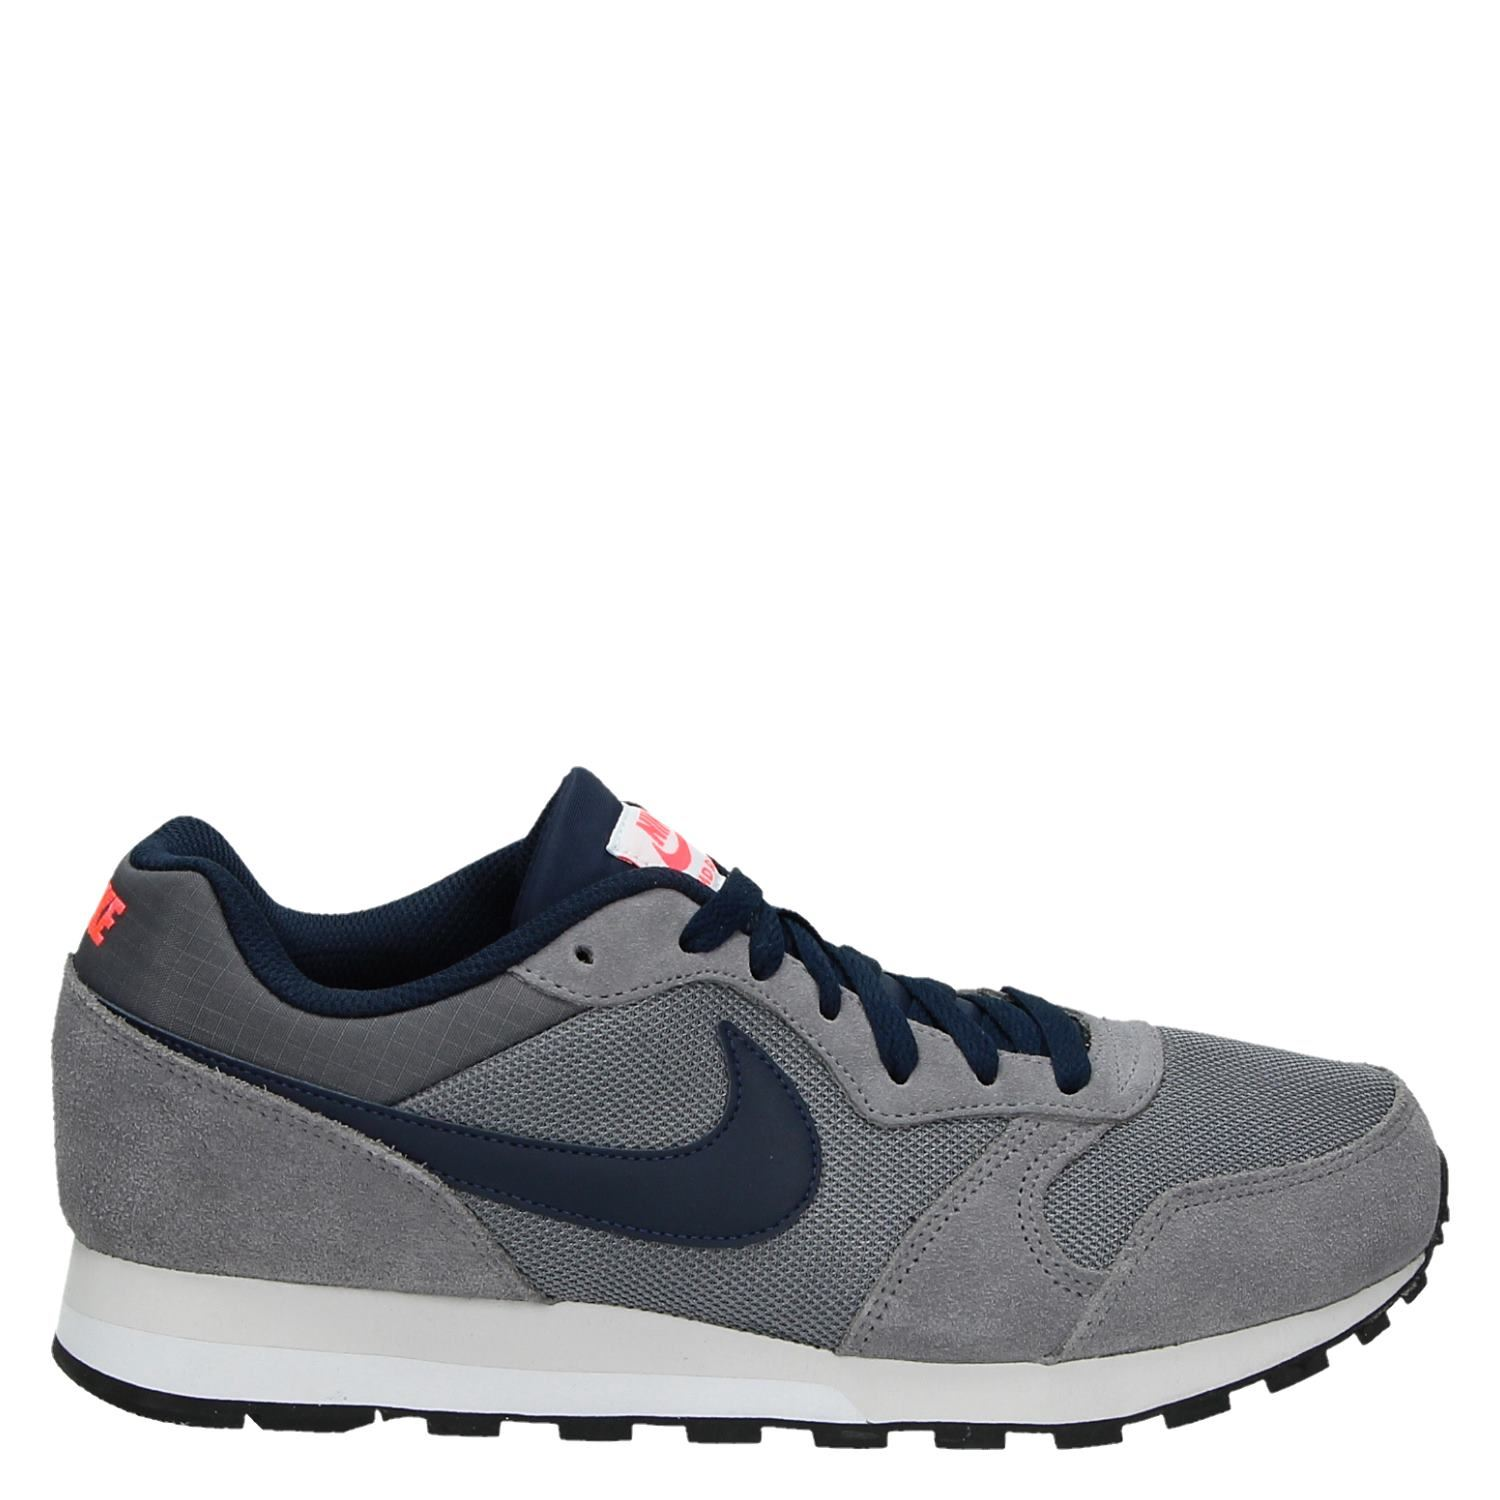 new styles 6959c 646ca Nike MD Runner 2 heren lage sneakers grijs